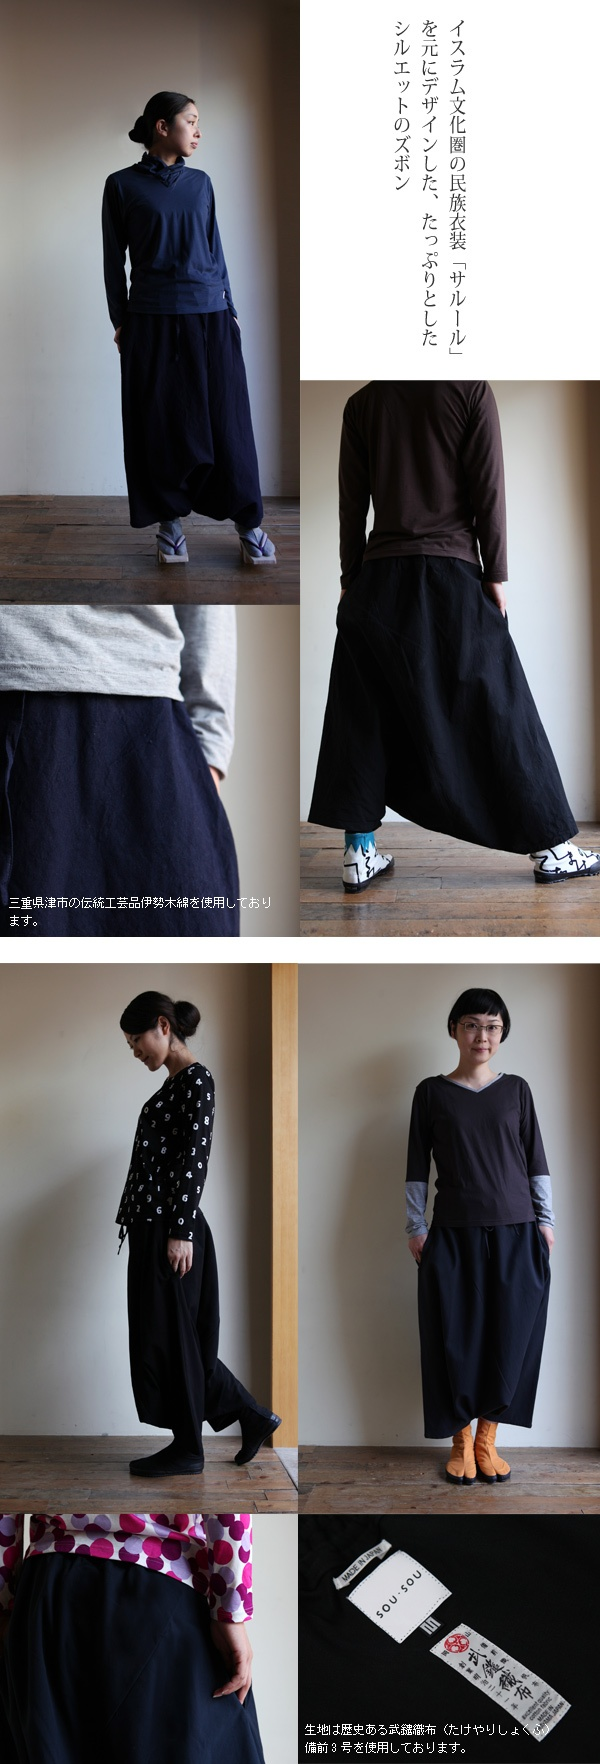 SouSou Japan. Dress/Pants or Harem Pants.  Traditional and locally made and dyed cotton in Japan + new design make these pants very cool.